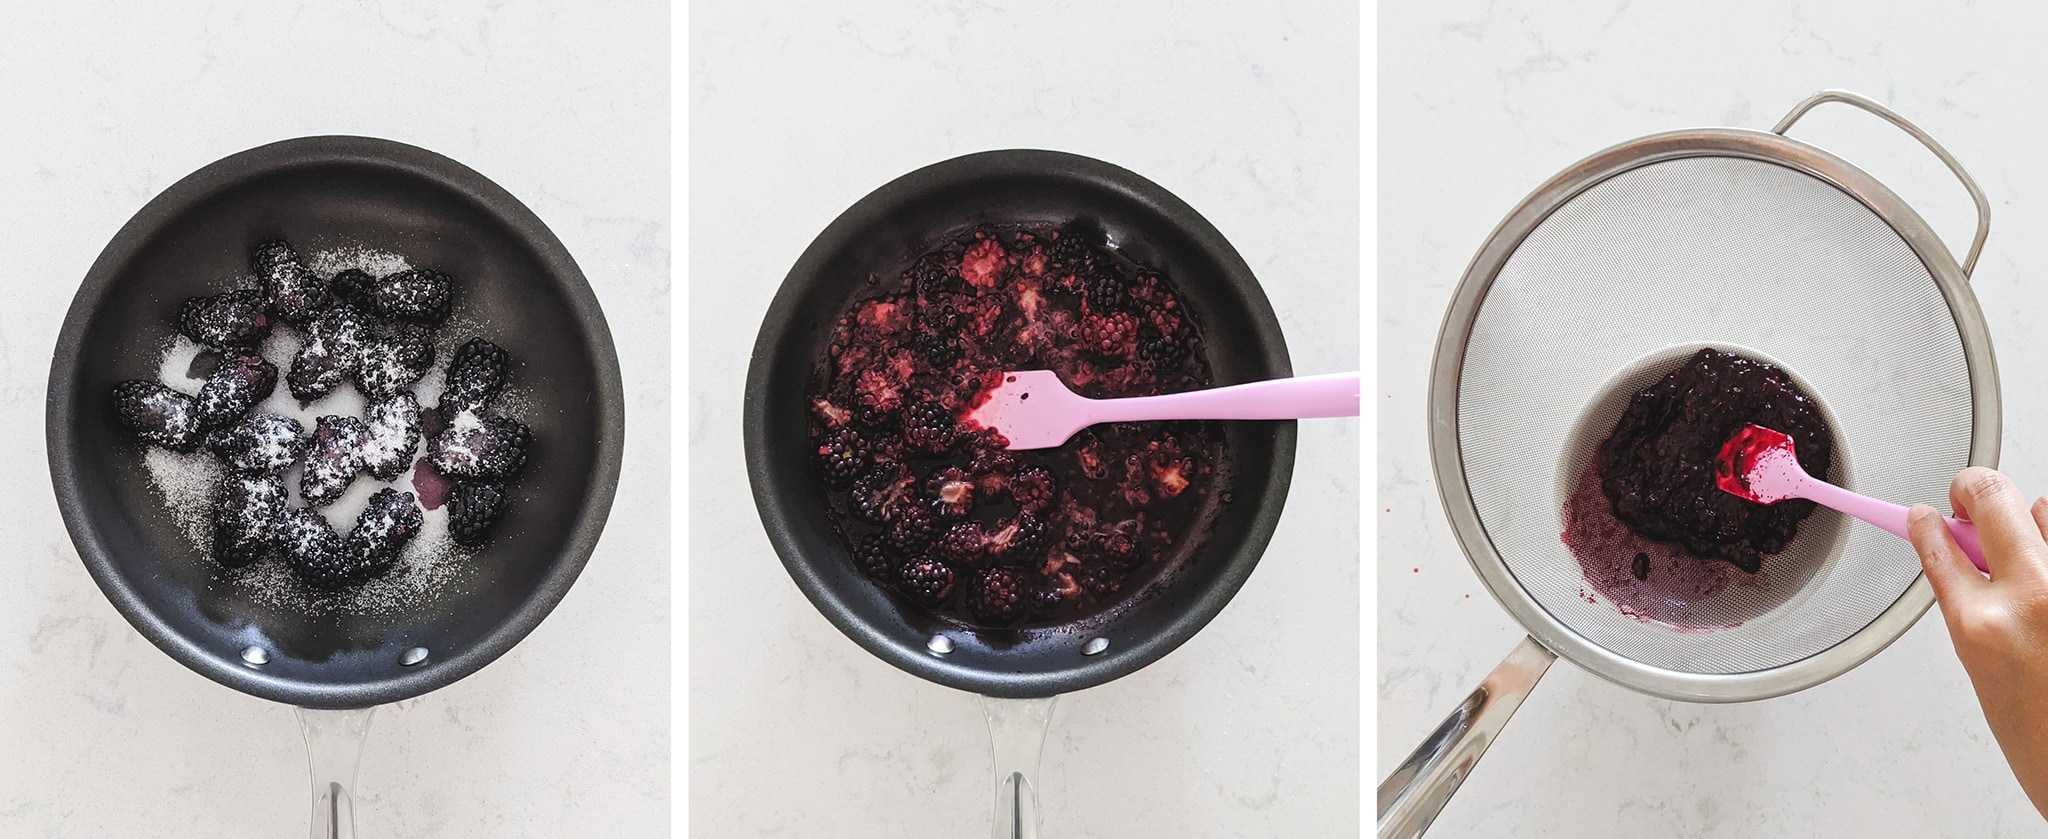 Cooking down blackberries into sauce in a pan